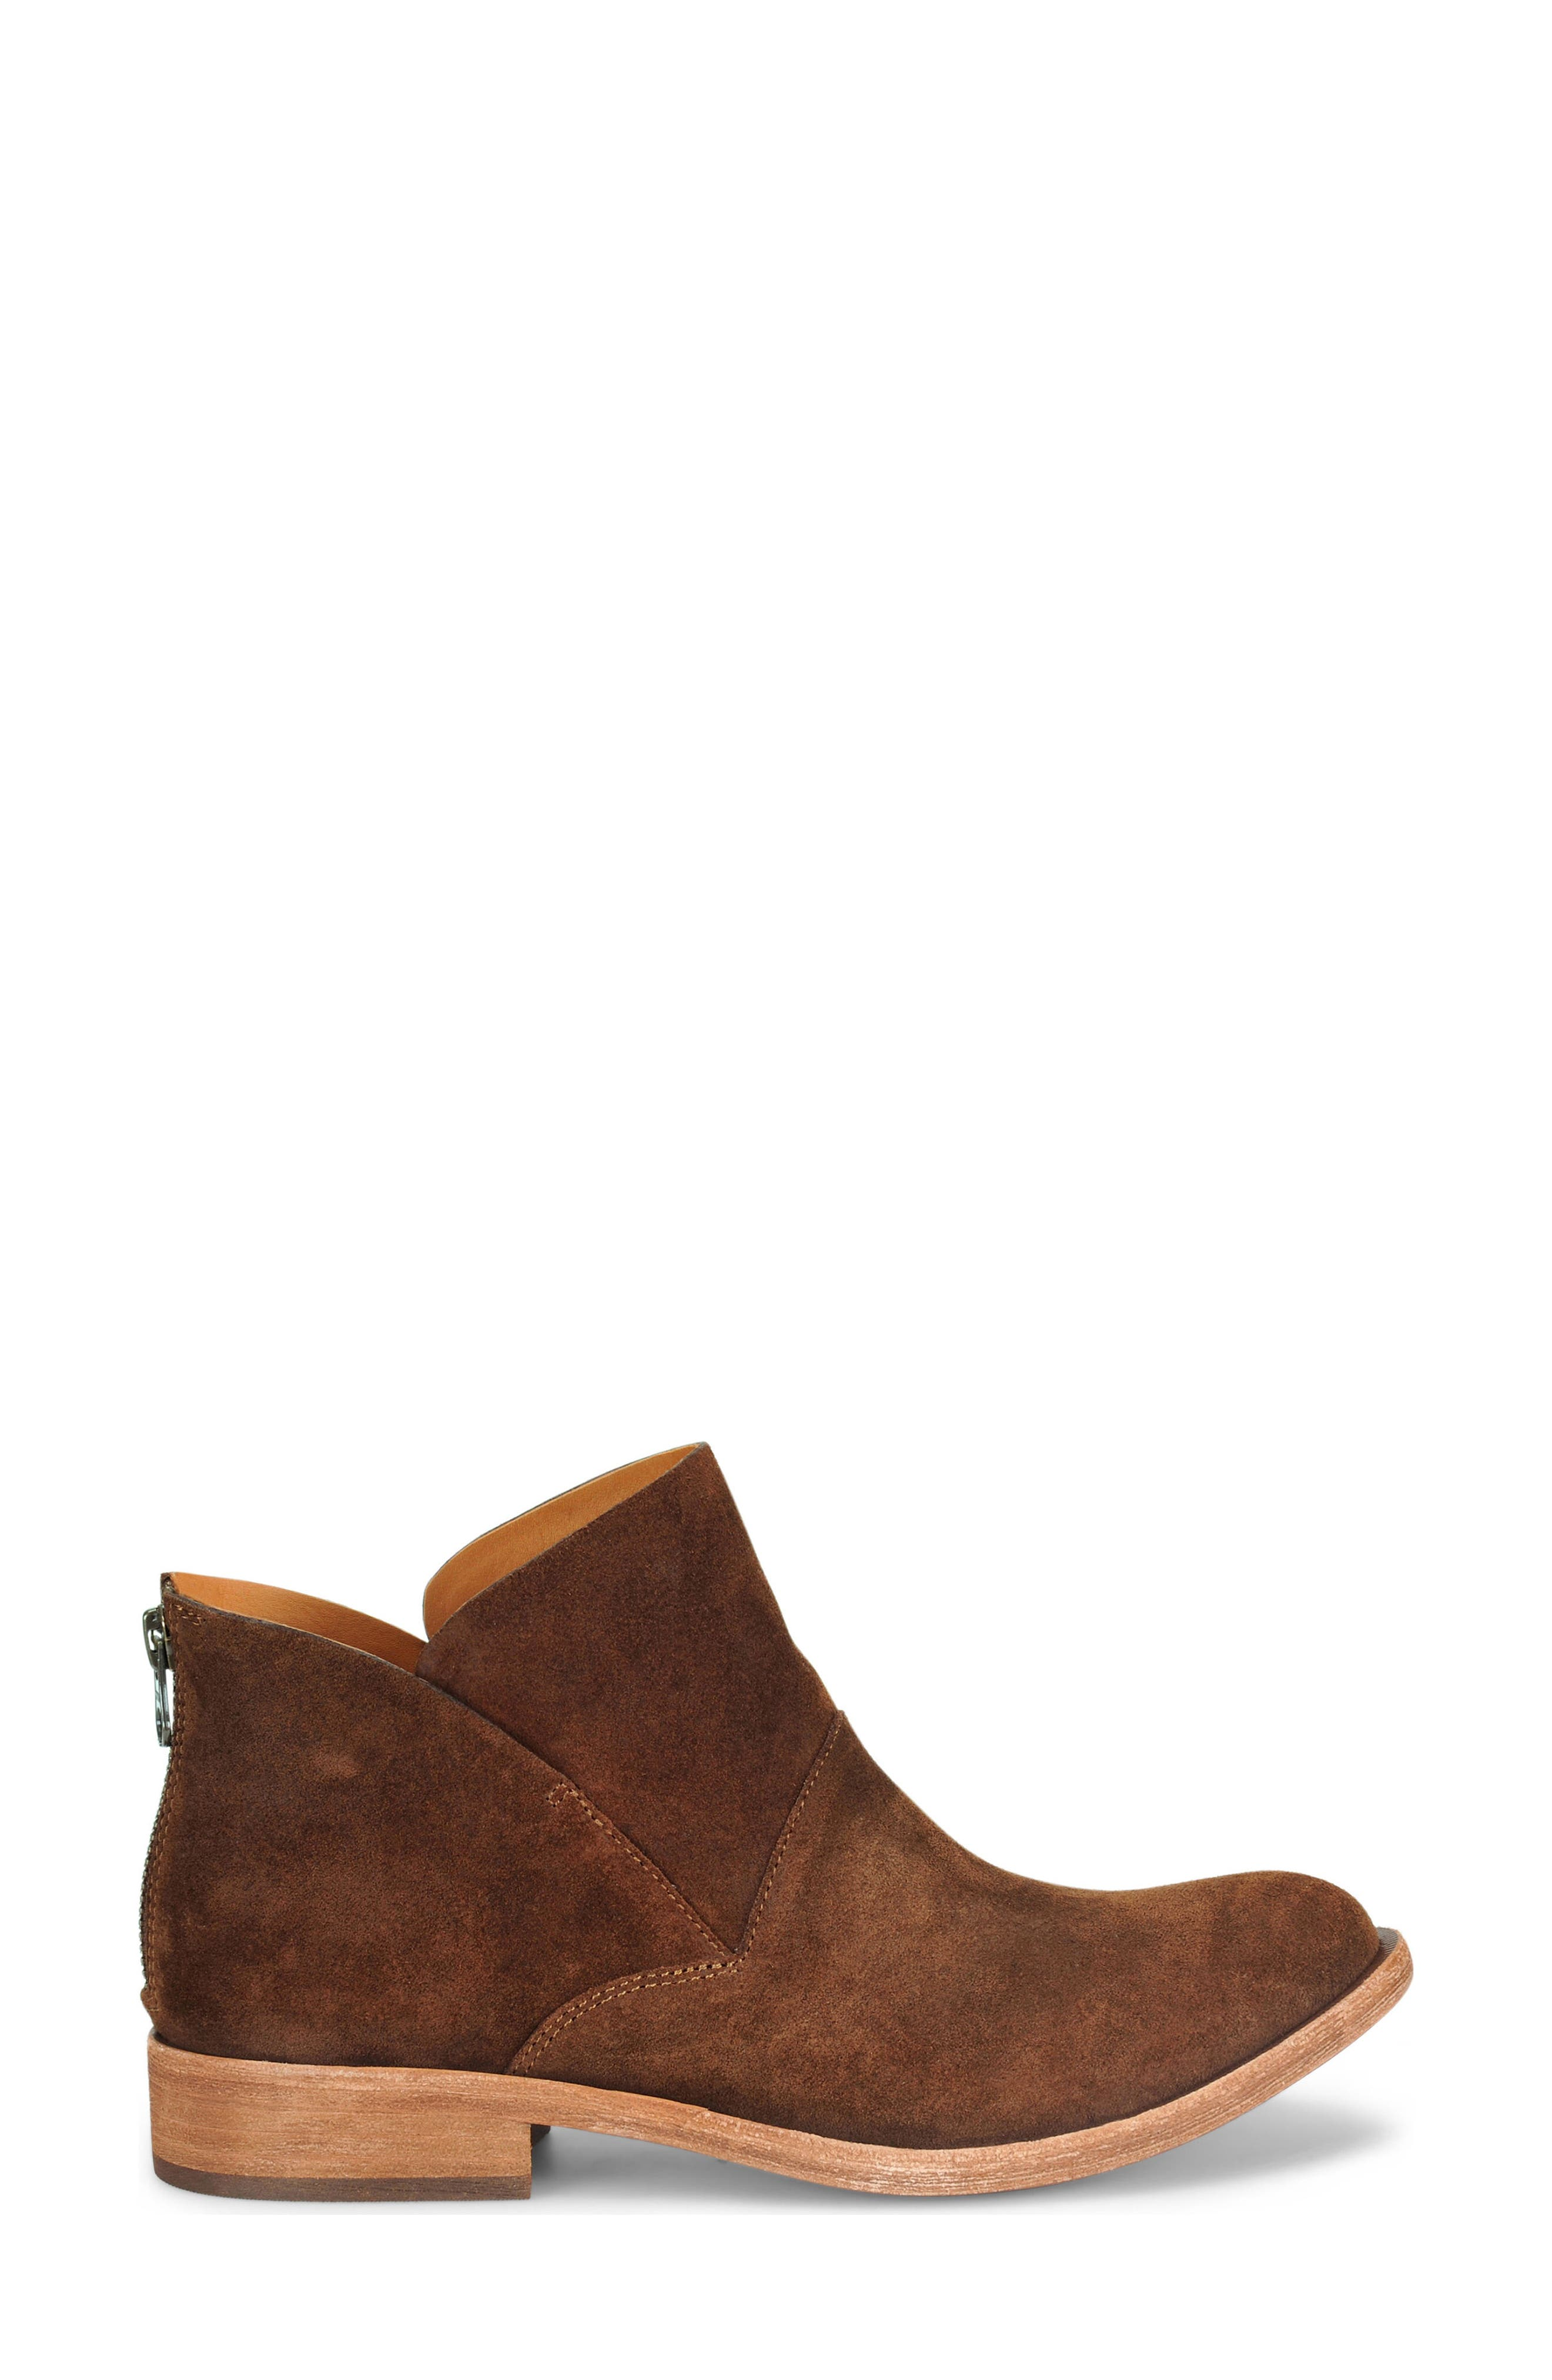 Ryder Ankle Boot,                             Alternate thumbnail 3, color,                             Rust Suede